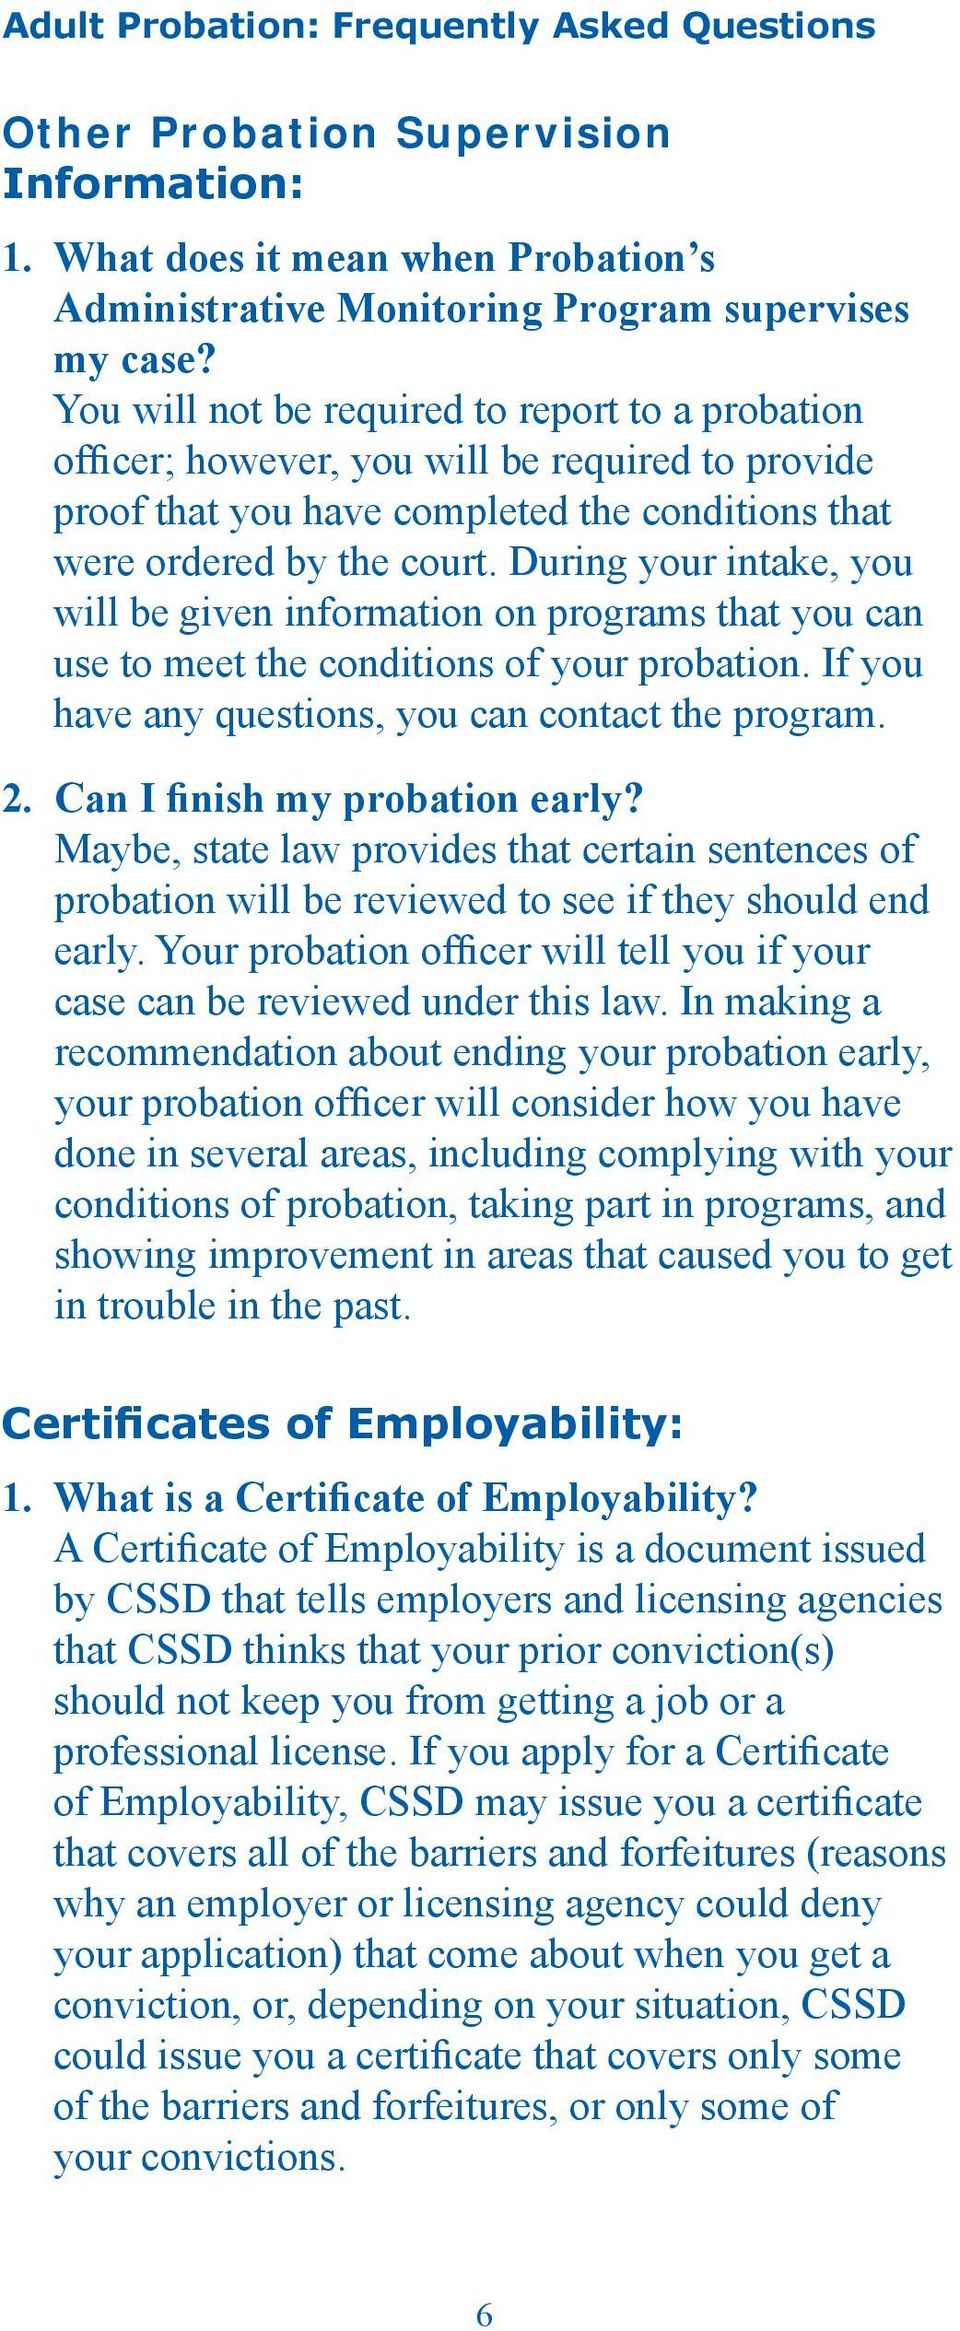 During your intake, you will be given information on programs that you can use to meet the conditions of your probation. If you have any questions, you can contact the program. 2.